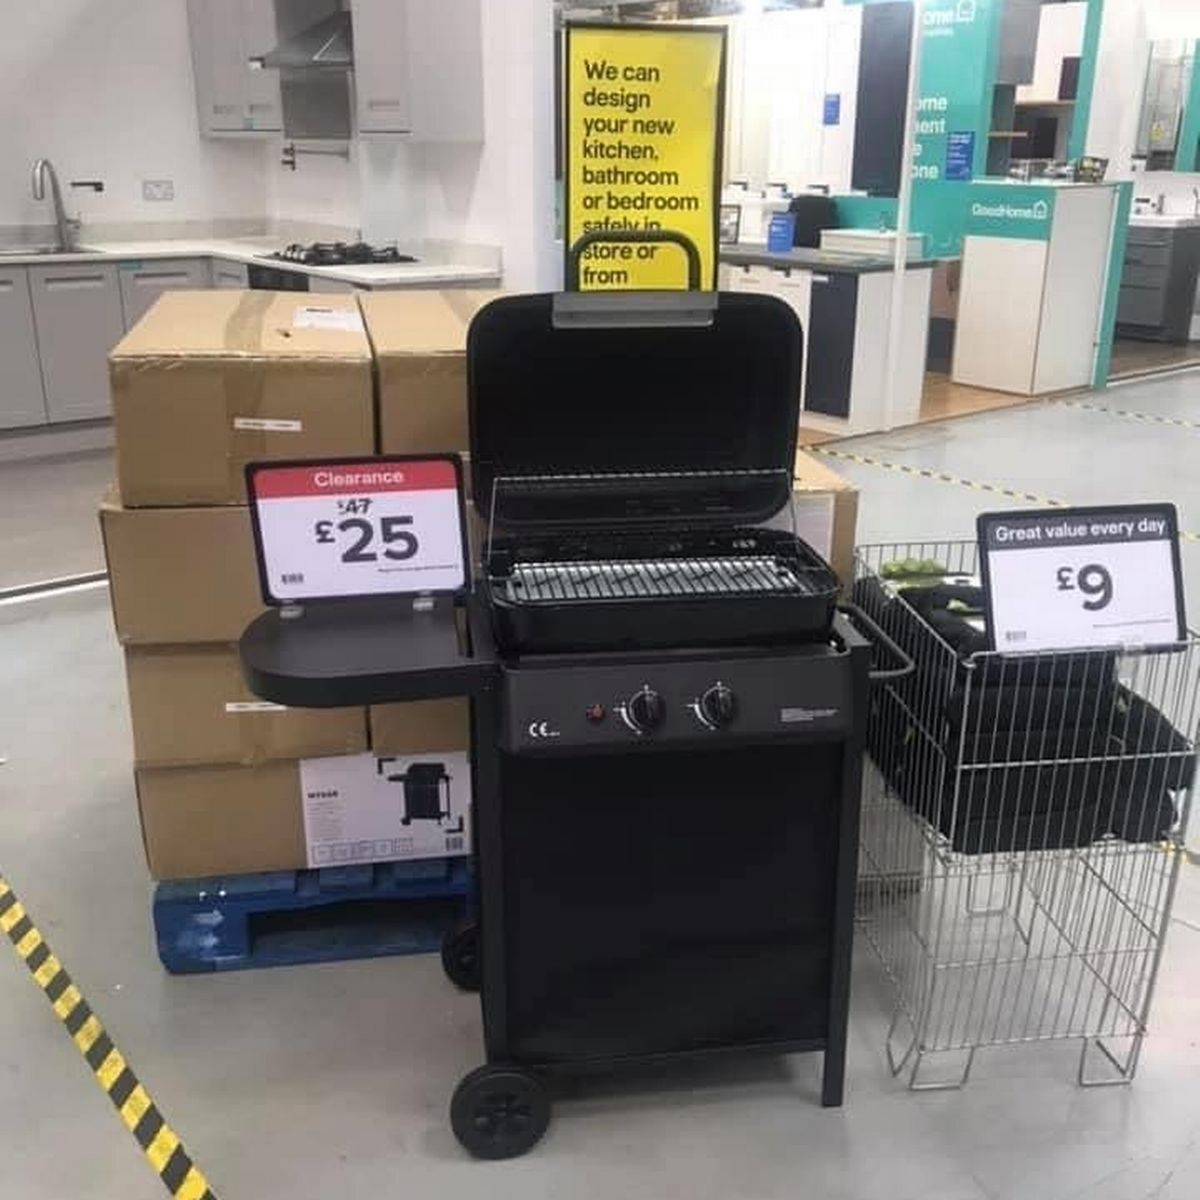 B Q Launches Massive Summer Clearance With Reductions Including A Stylish Gas Bbq Down To Just 25 Daily Record - Morrisons Garden Furniture Clearance